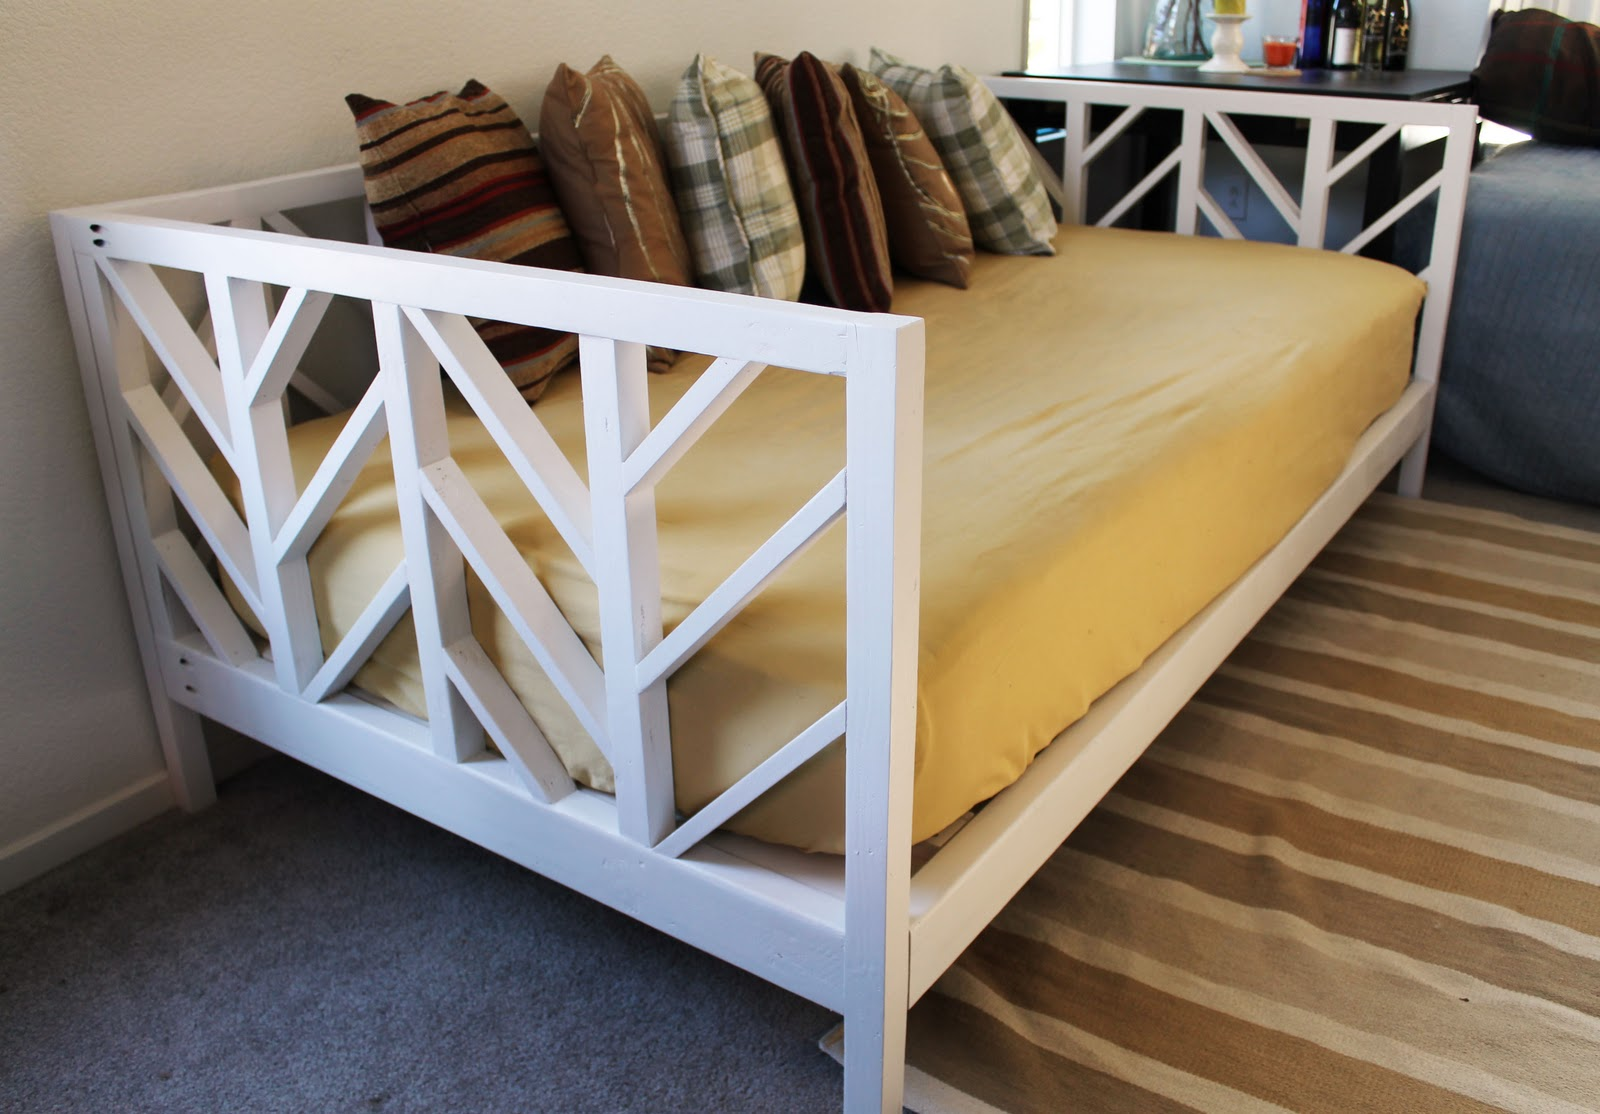 Do It Yourself Home Design: The Sleepy Peach: Adventures In Building: Herringbone Daybed